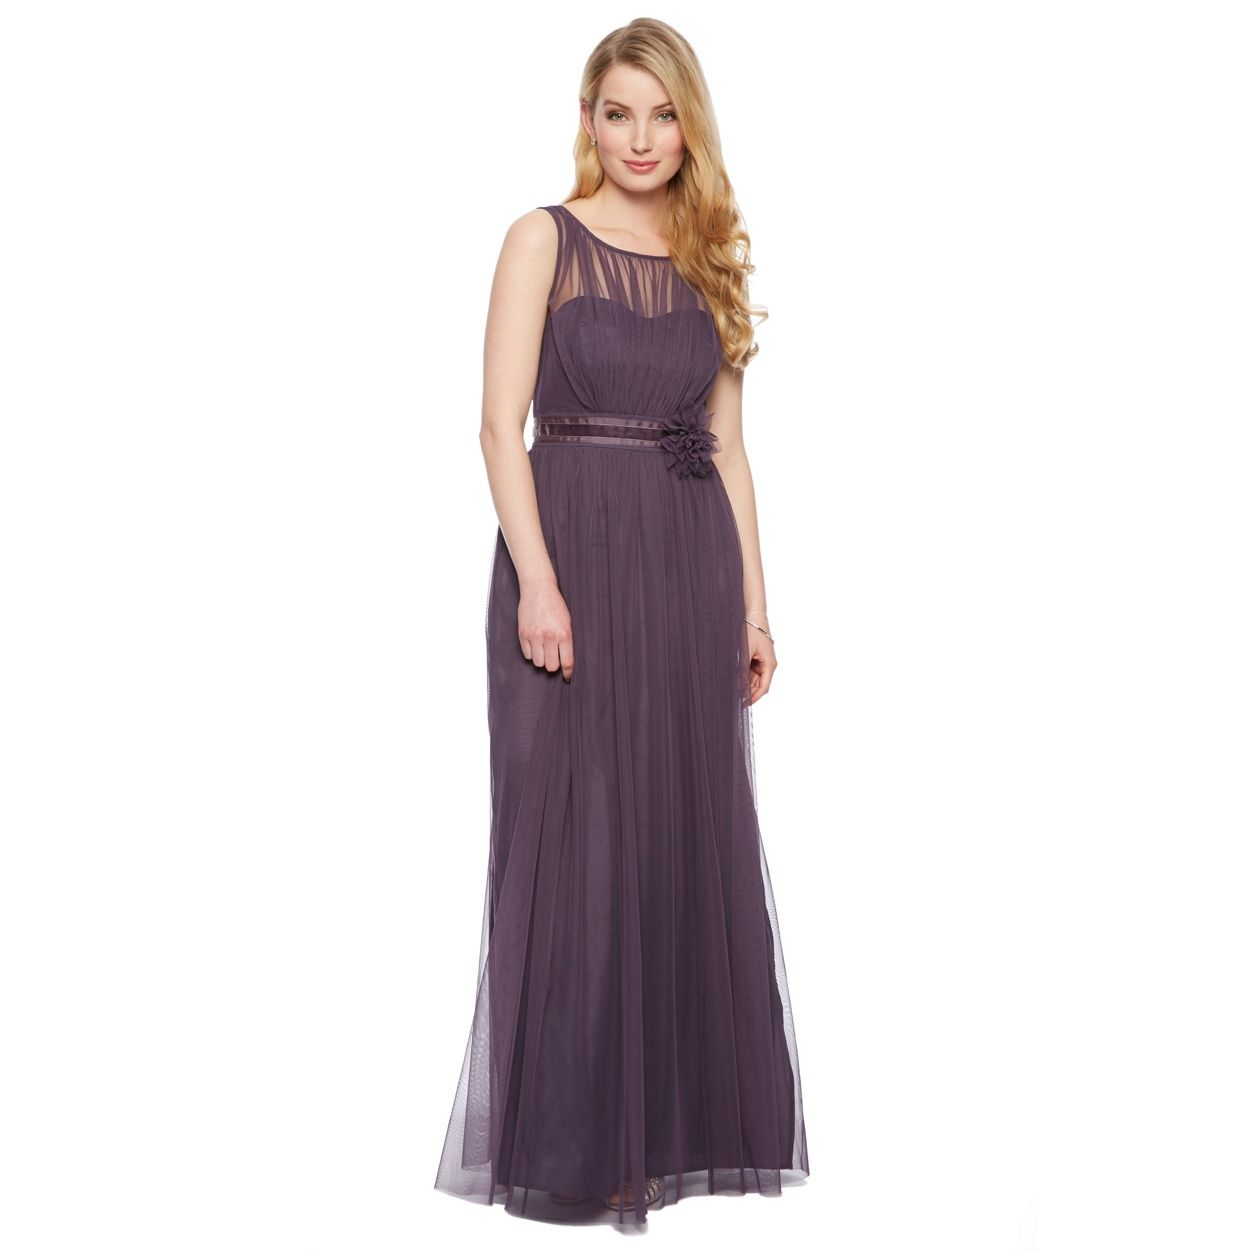 What do you think lucy x debut purple celine mesh bodice maxi what do you think lucy x debut purple celine mesh bodice maxi dress bridesmaid ombrellifo Gallery